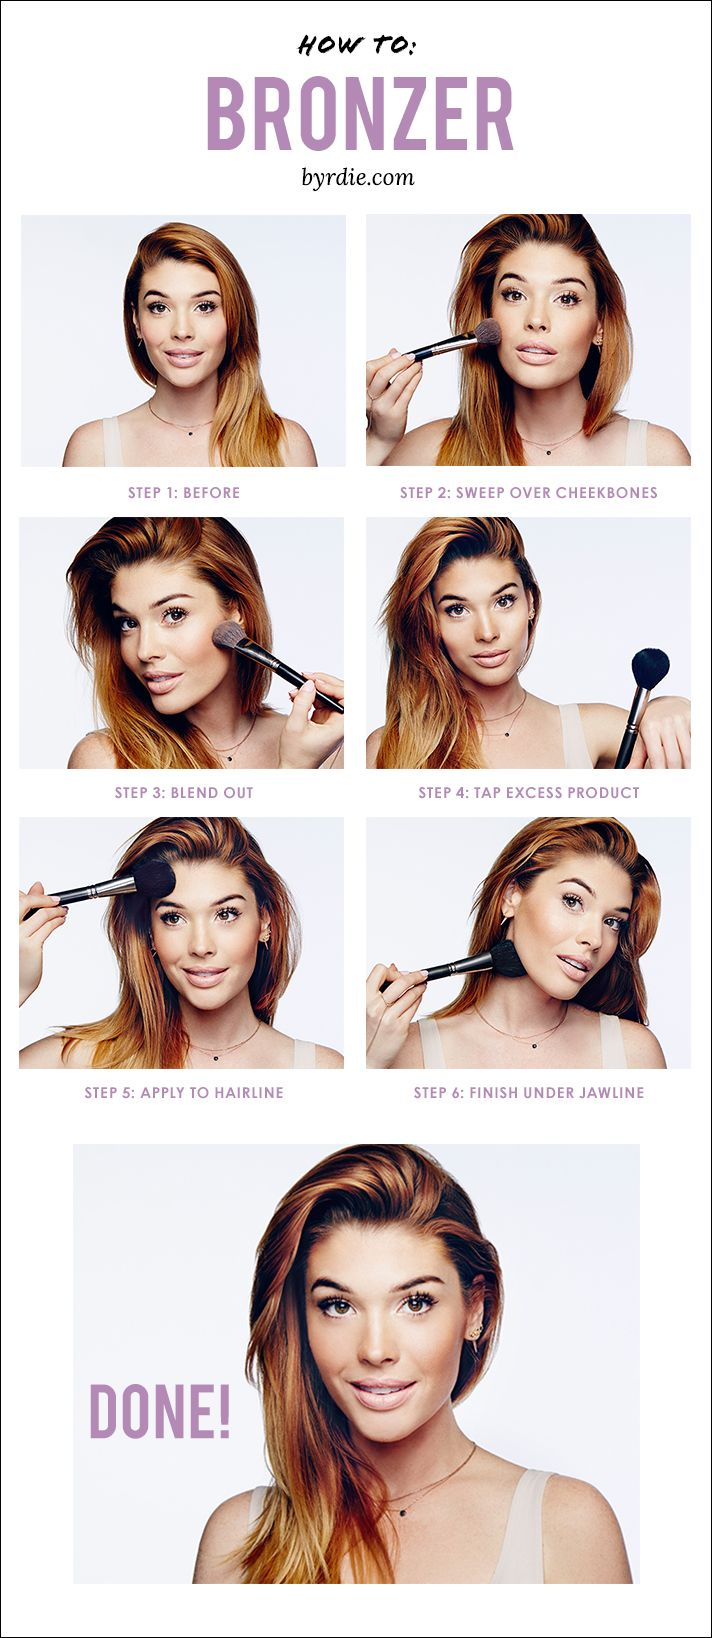 55 Best Images About Basics: Contouring, Bronzer, Blush, & Highlighting  Tutorials On Pinterest